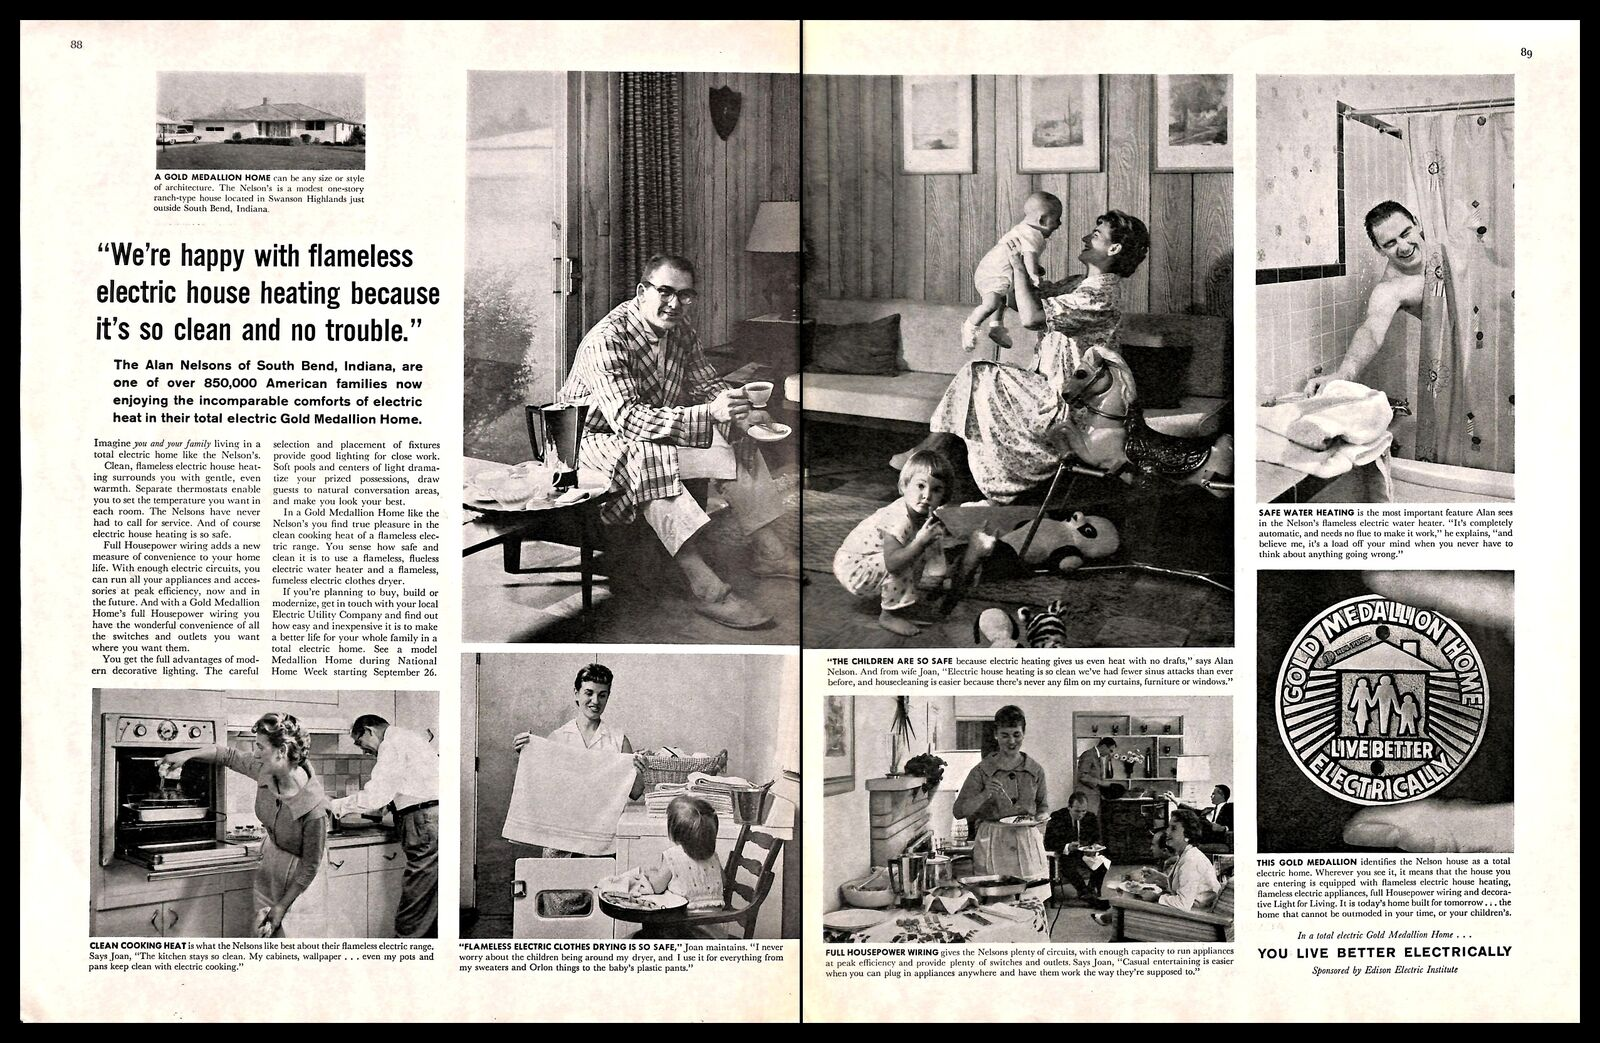 1960 General Electric Live Better Electrically Vintage Print Ad Home Campaign Ebay